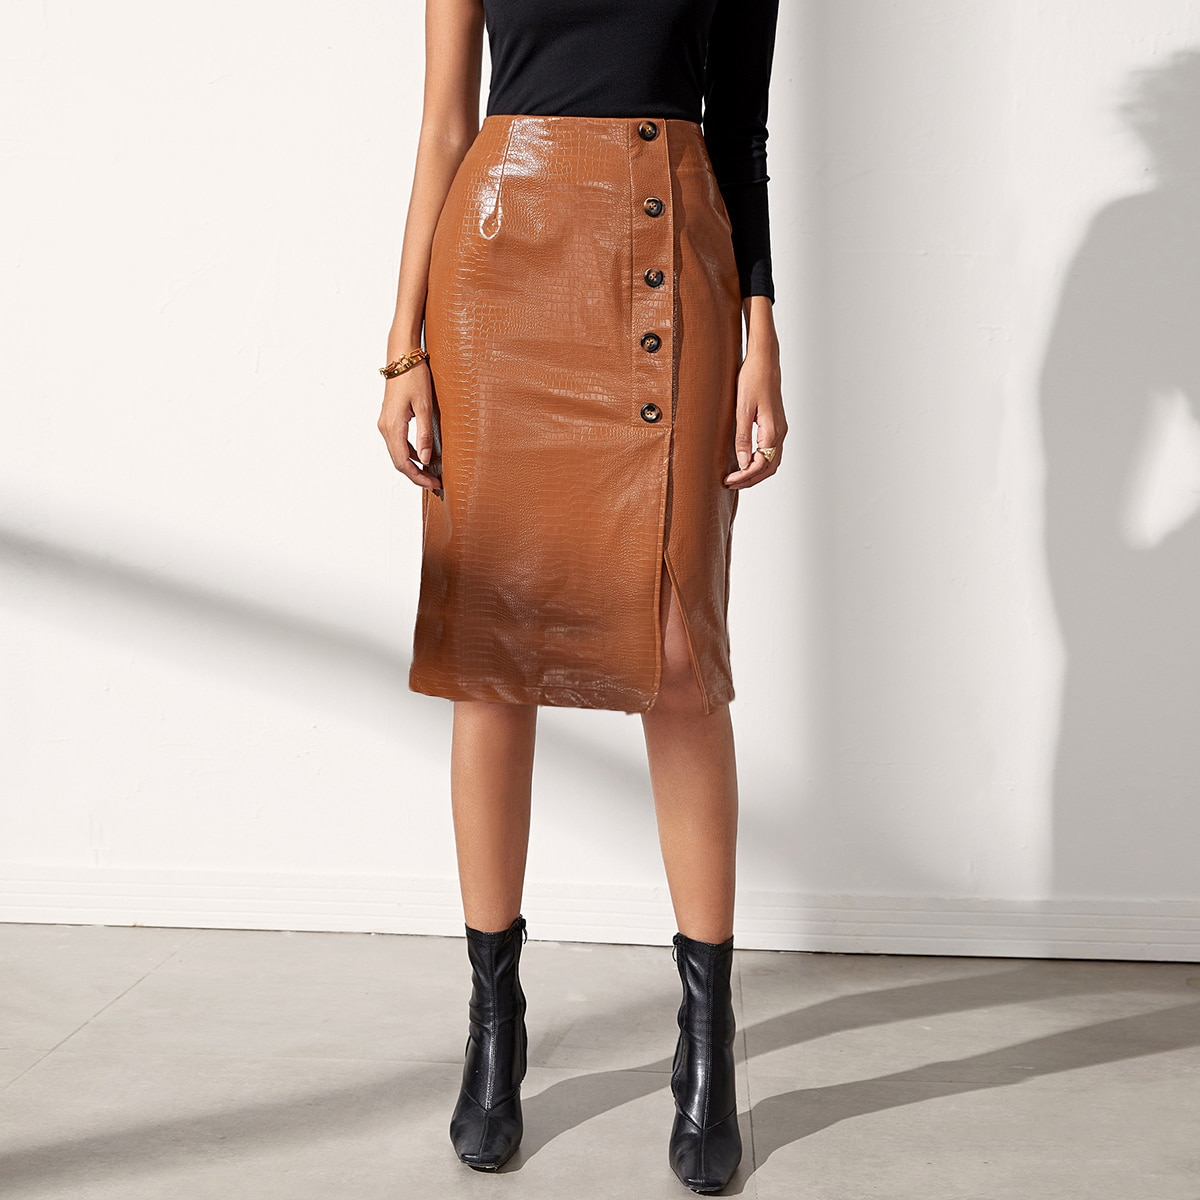 SHEIN / Button Up Crocodile Embossed PU Leather Skirt